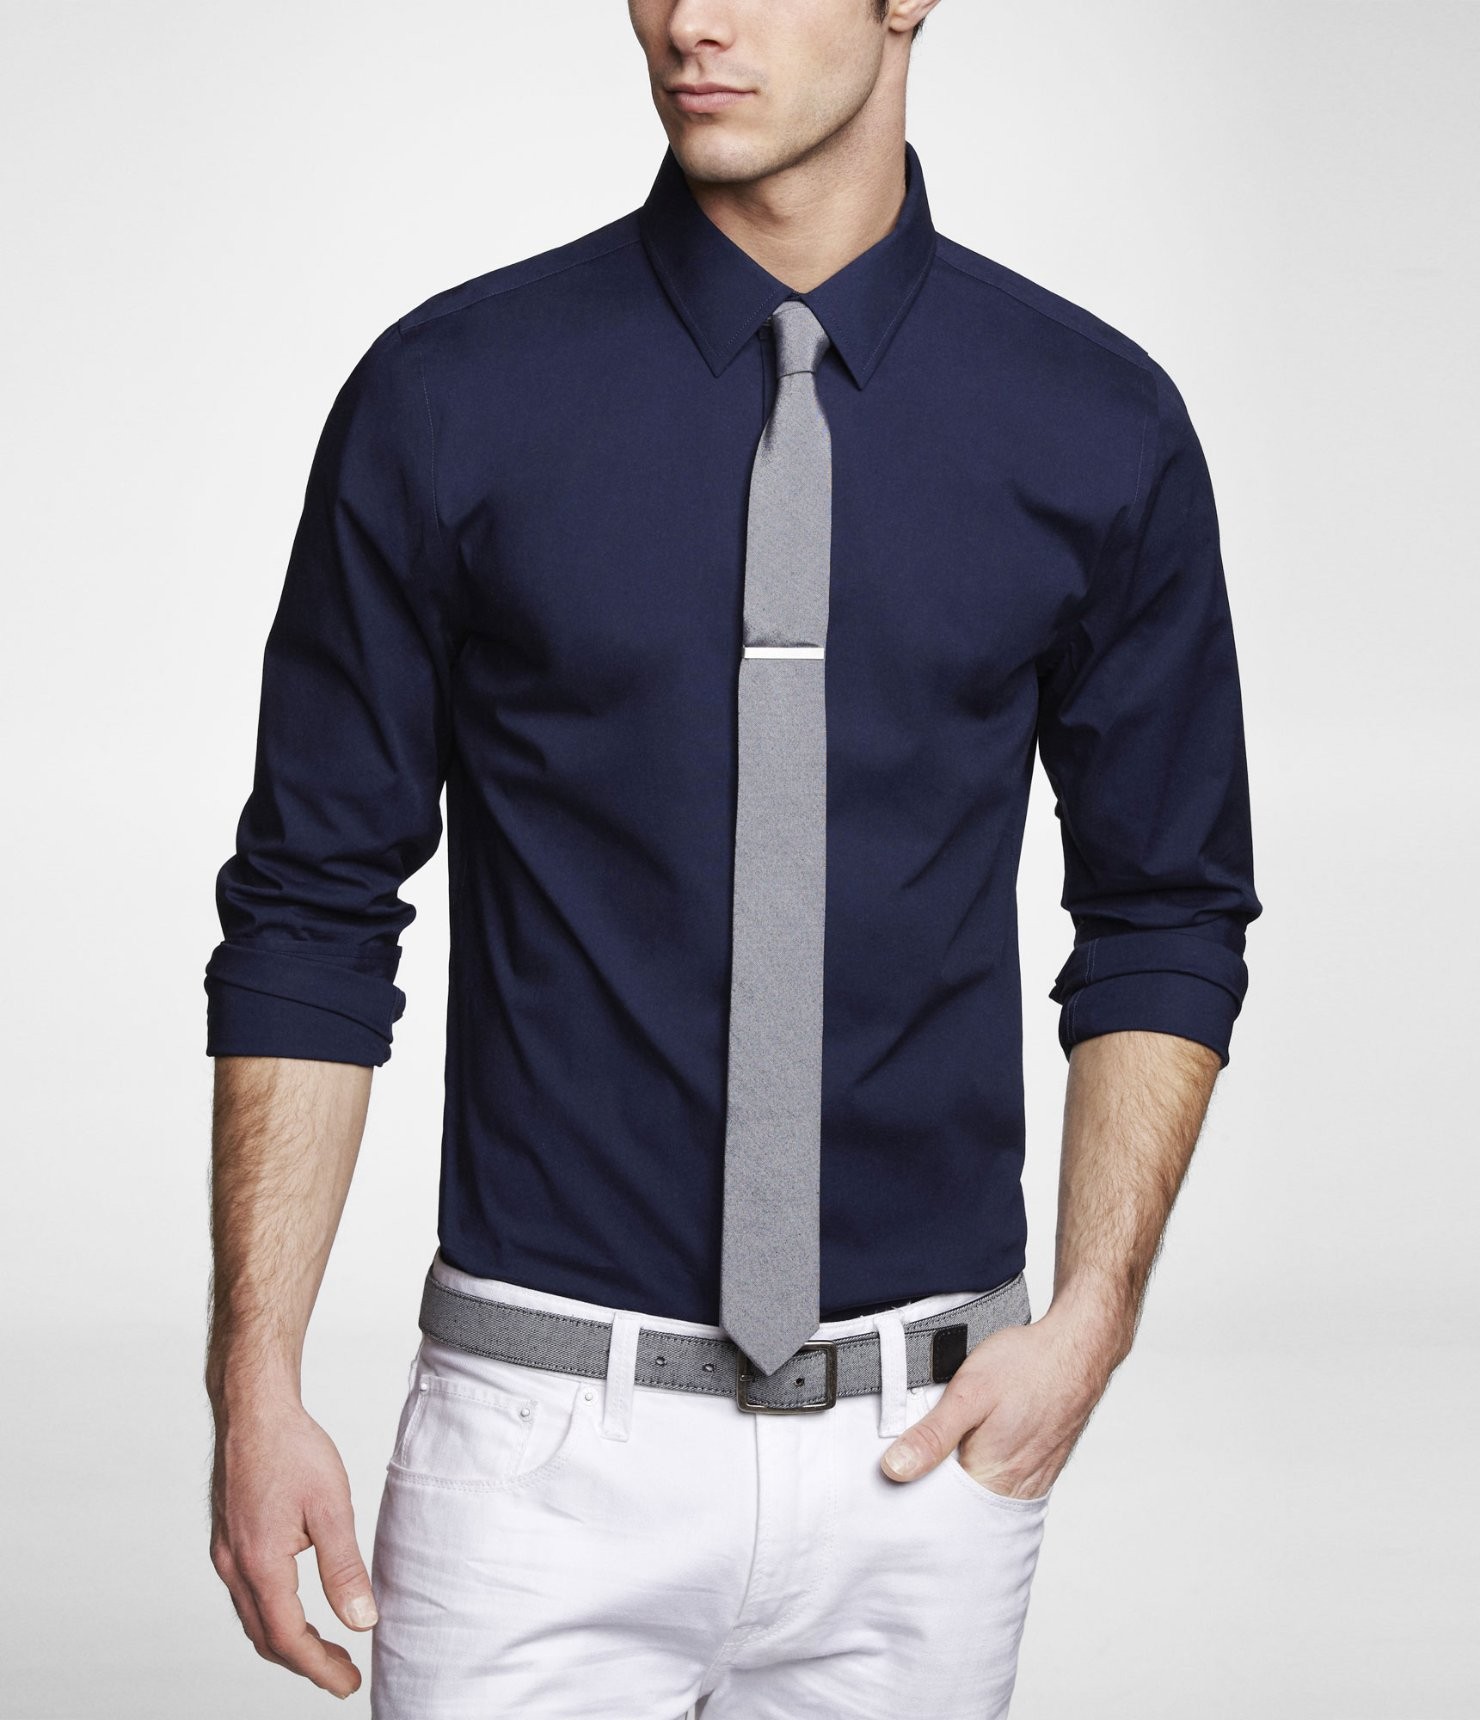 mens dress shirts shop 1mx dress shirts from express